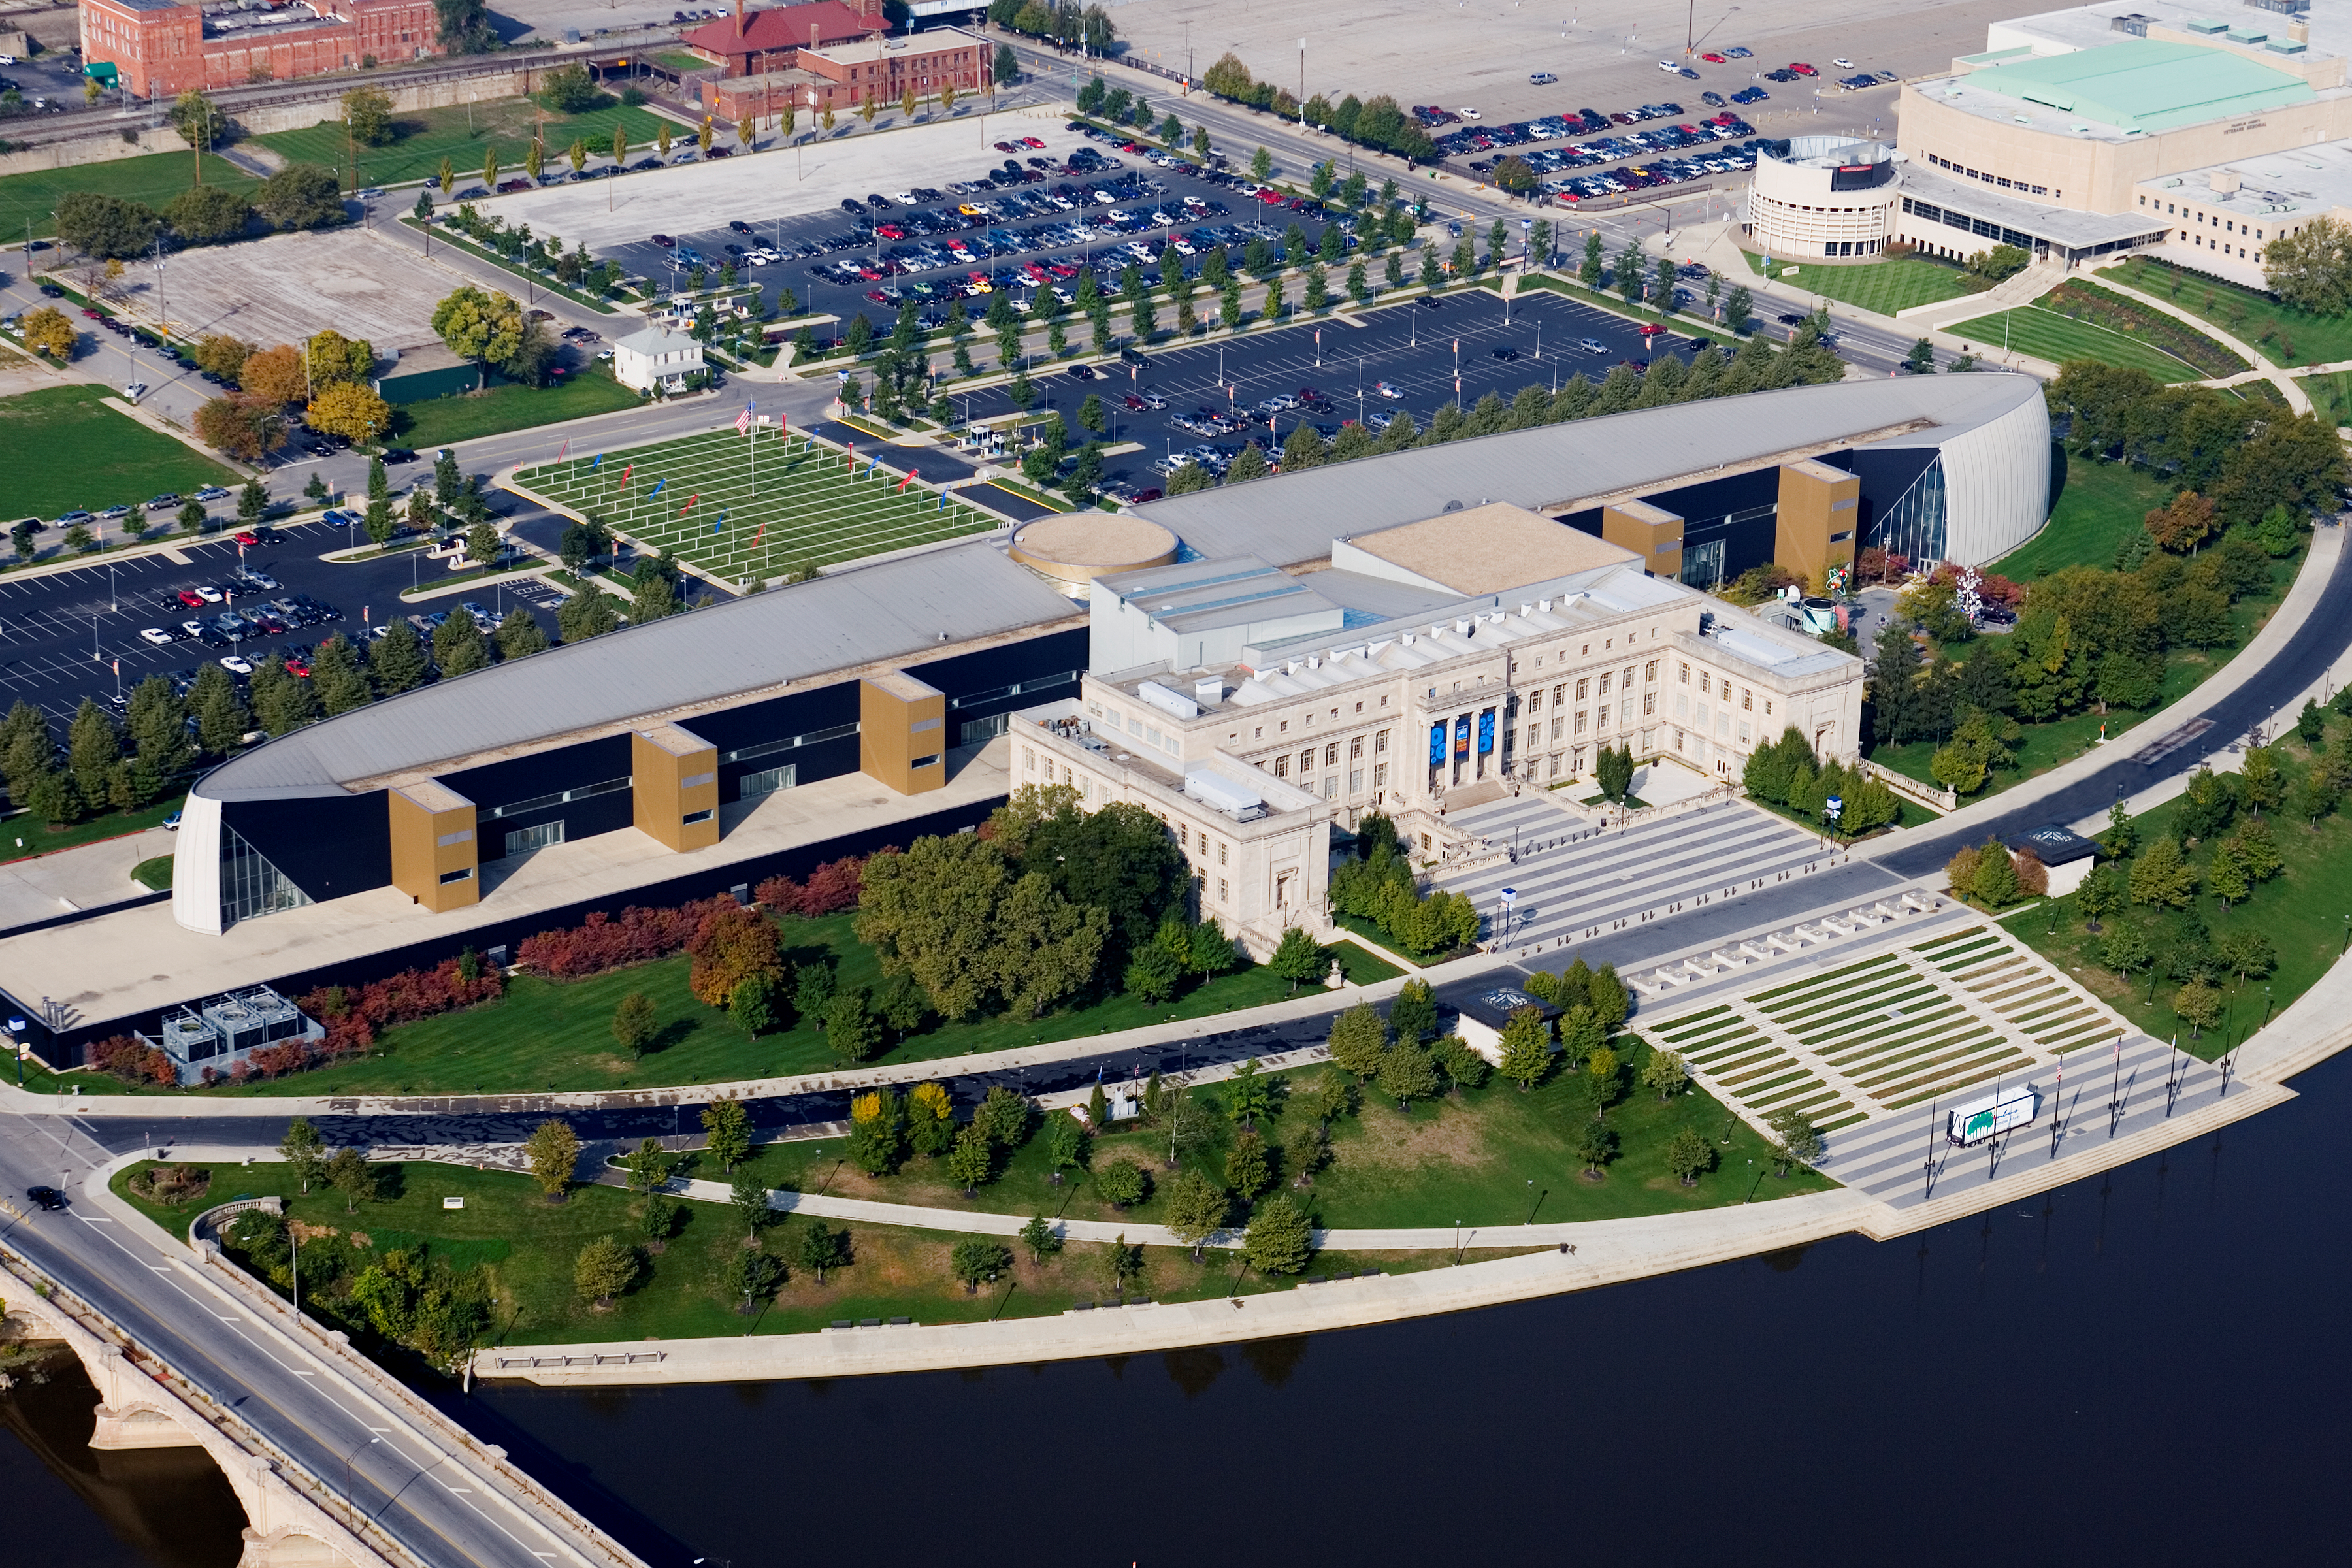 Aerial view of COSI